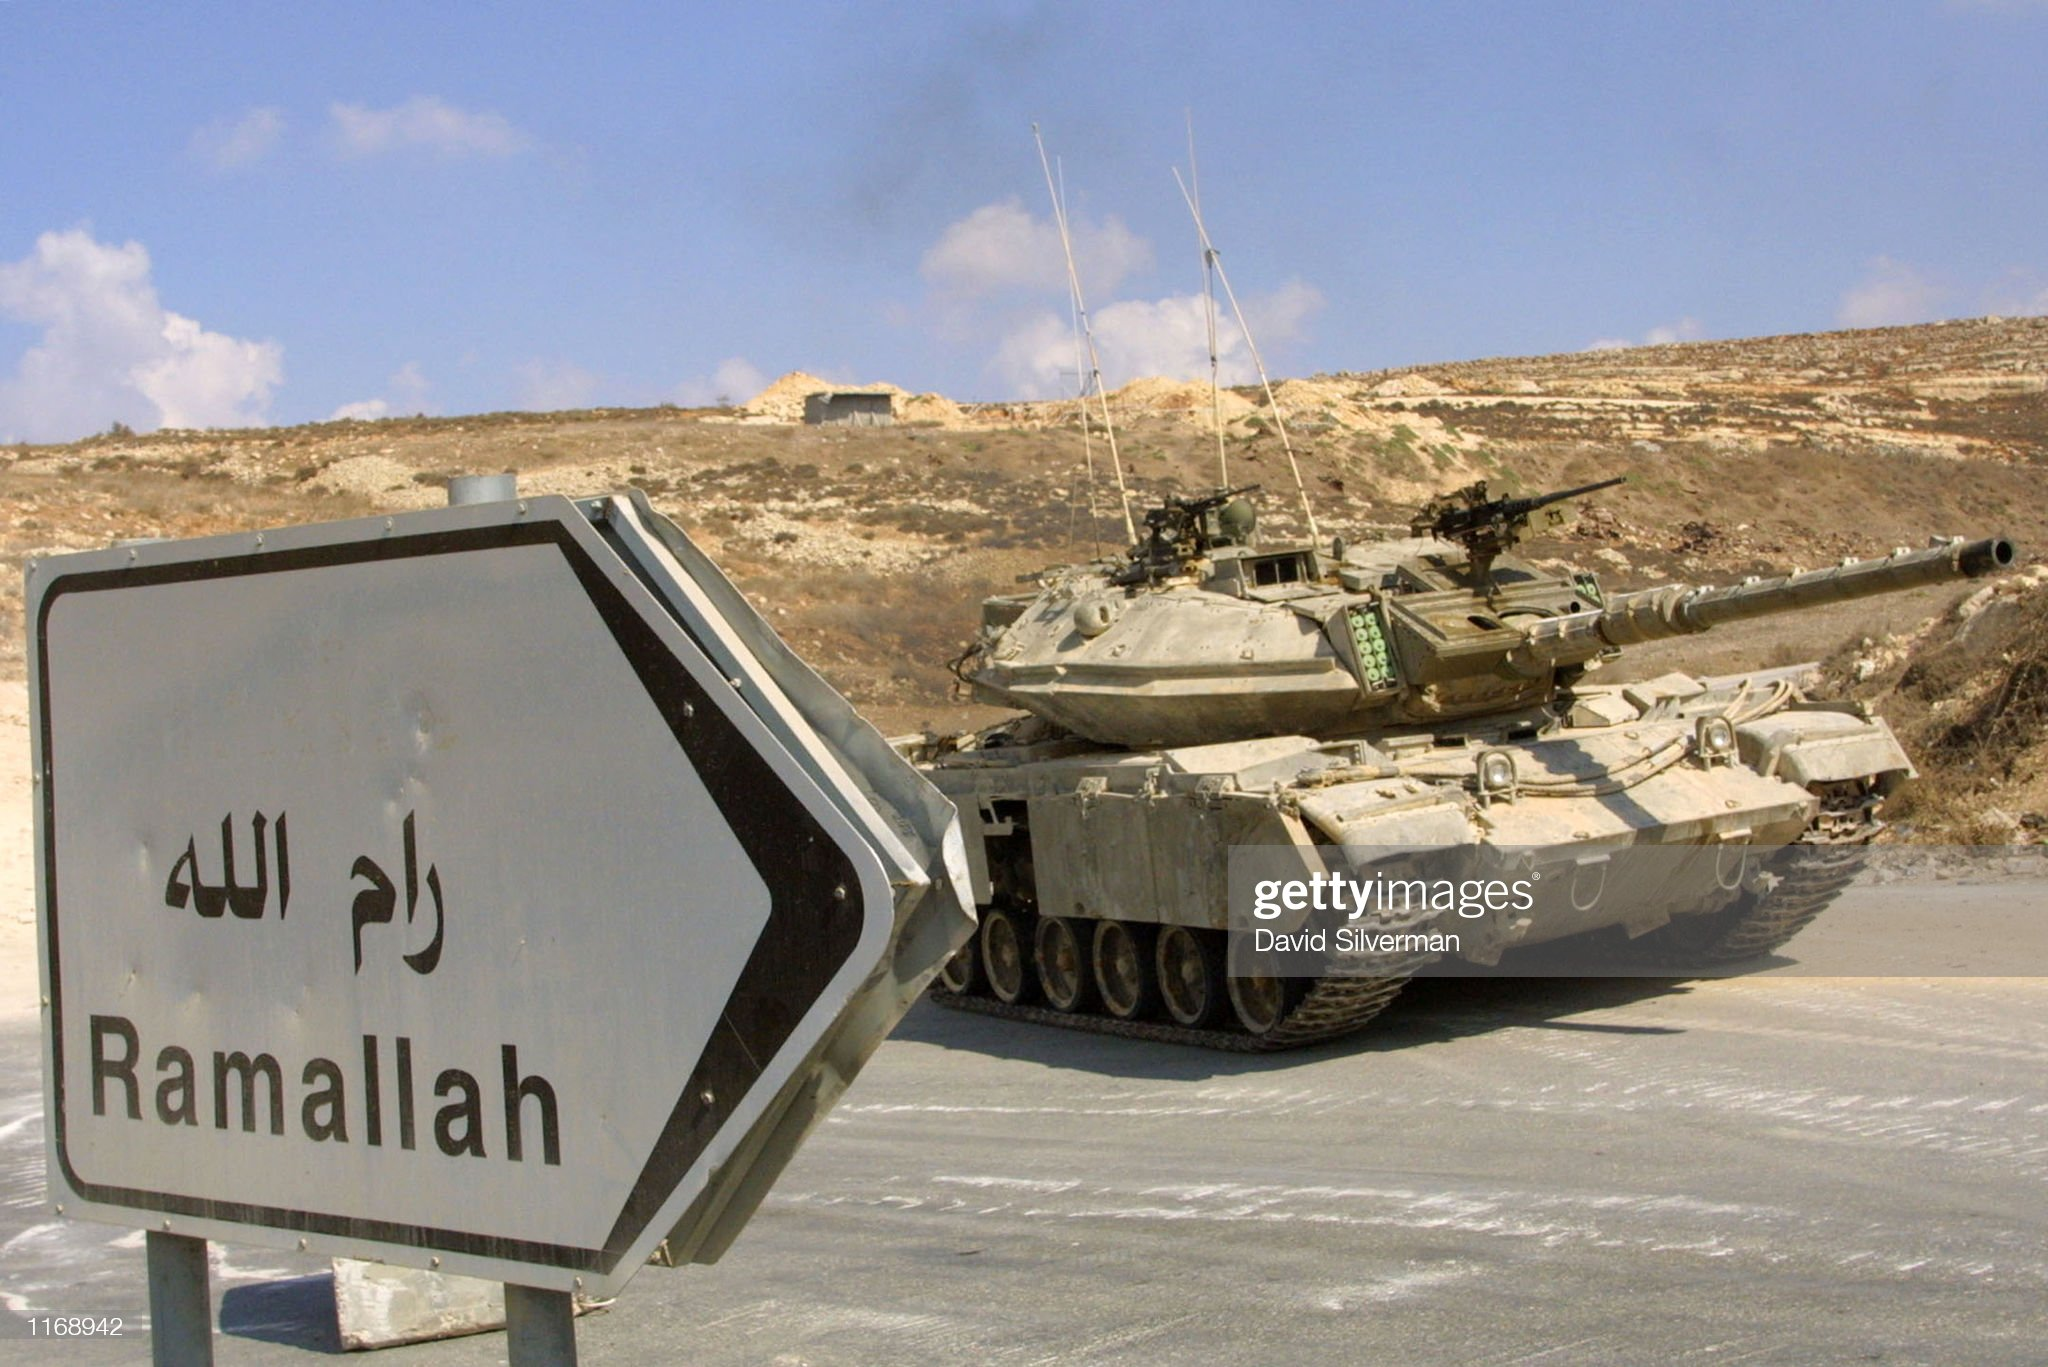 https://media.gettyimages.com/photos/an-israeli-tank-enters-the-west-bank-palestinian-town-of-ramallah-18-picture-id1168942?s=2048x2048